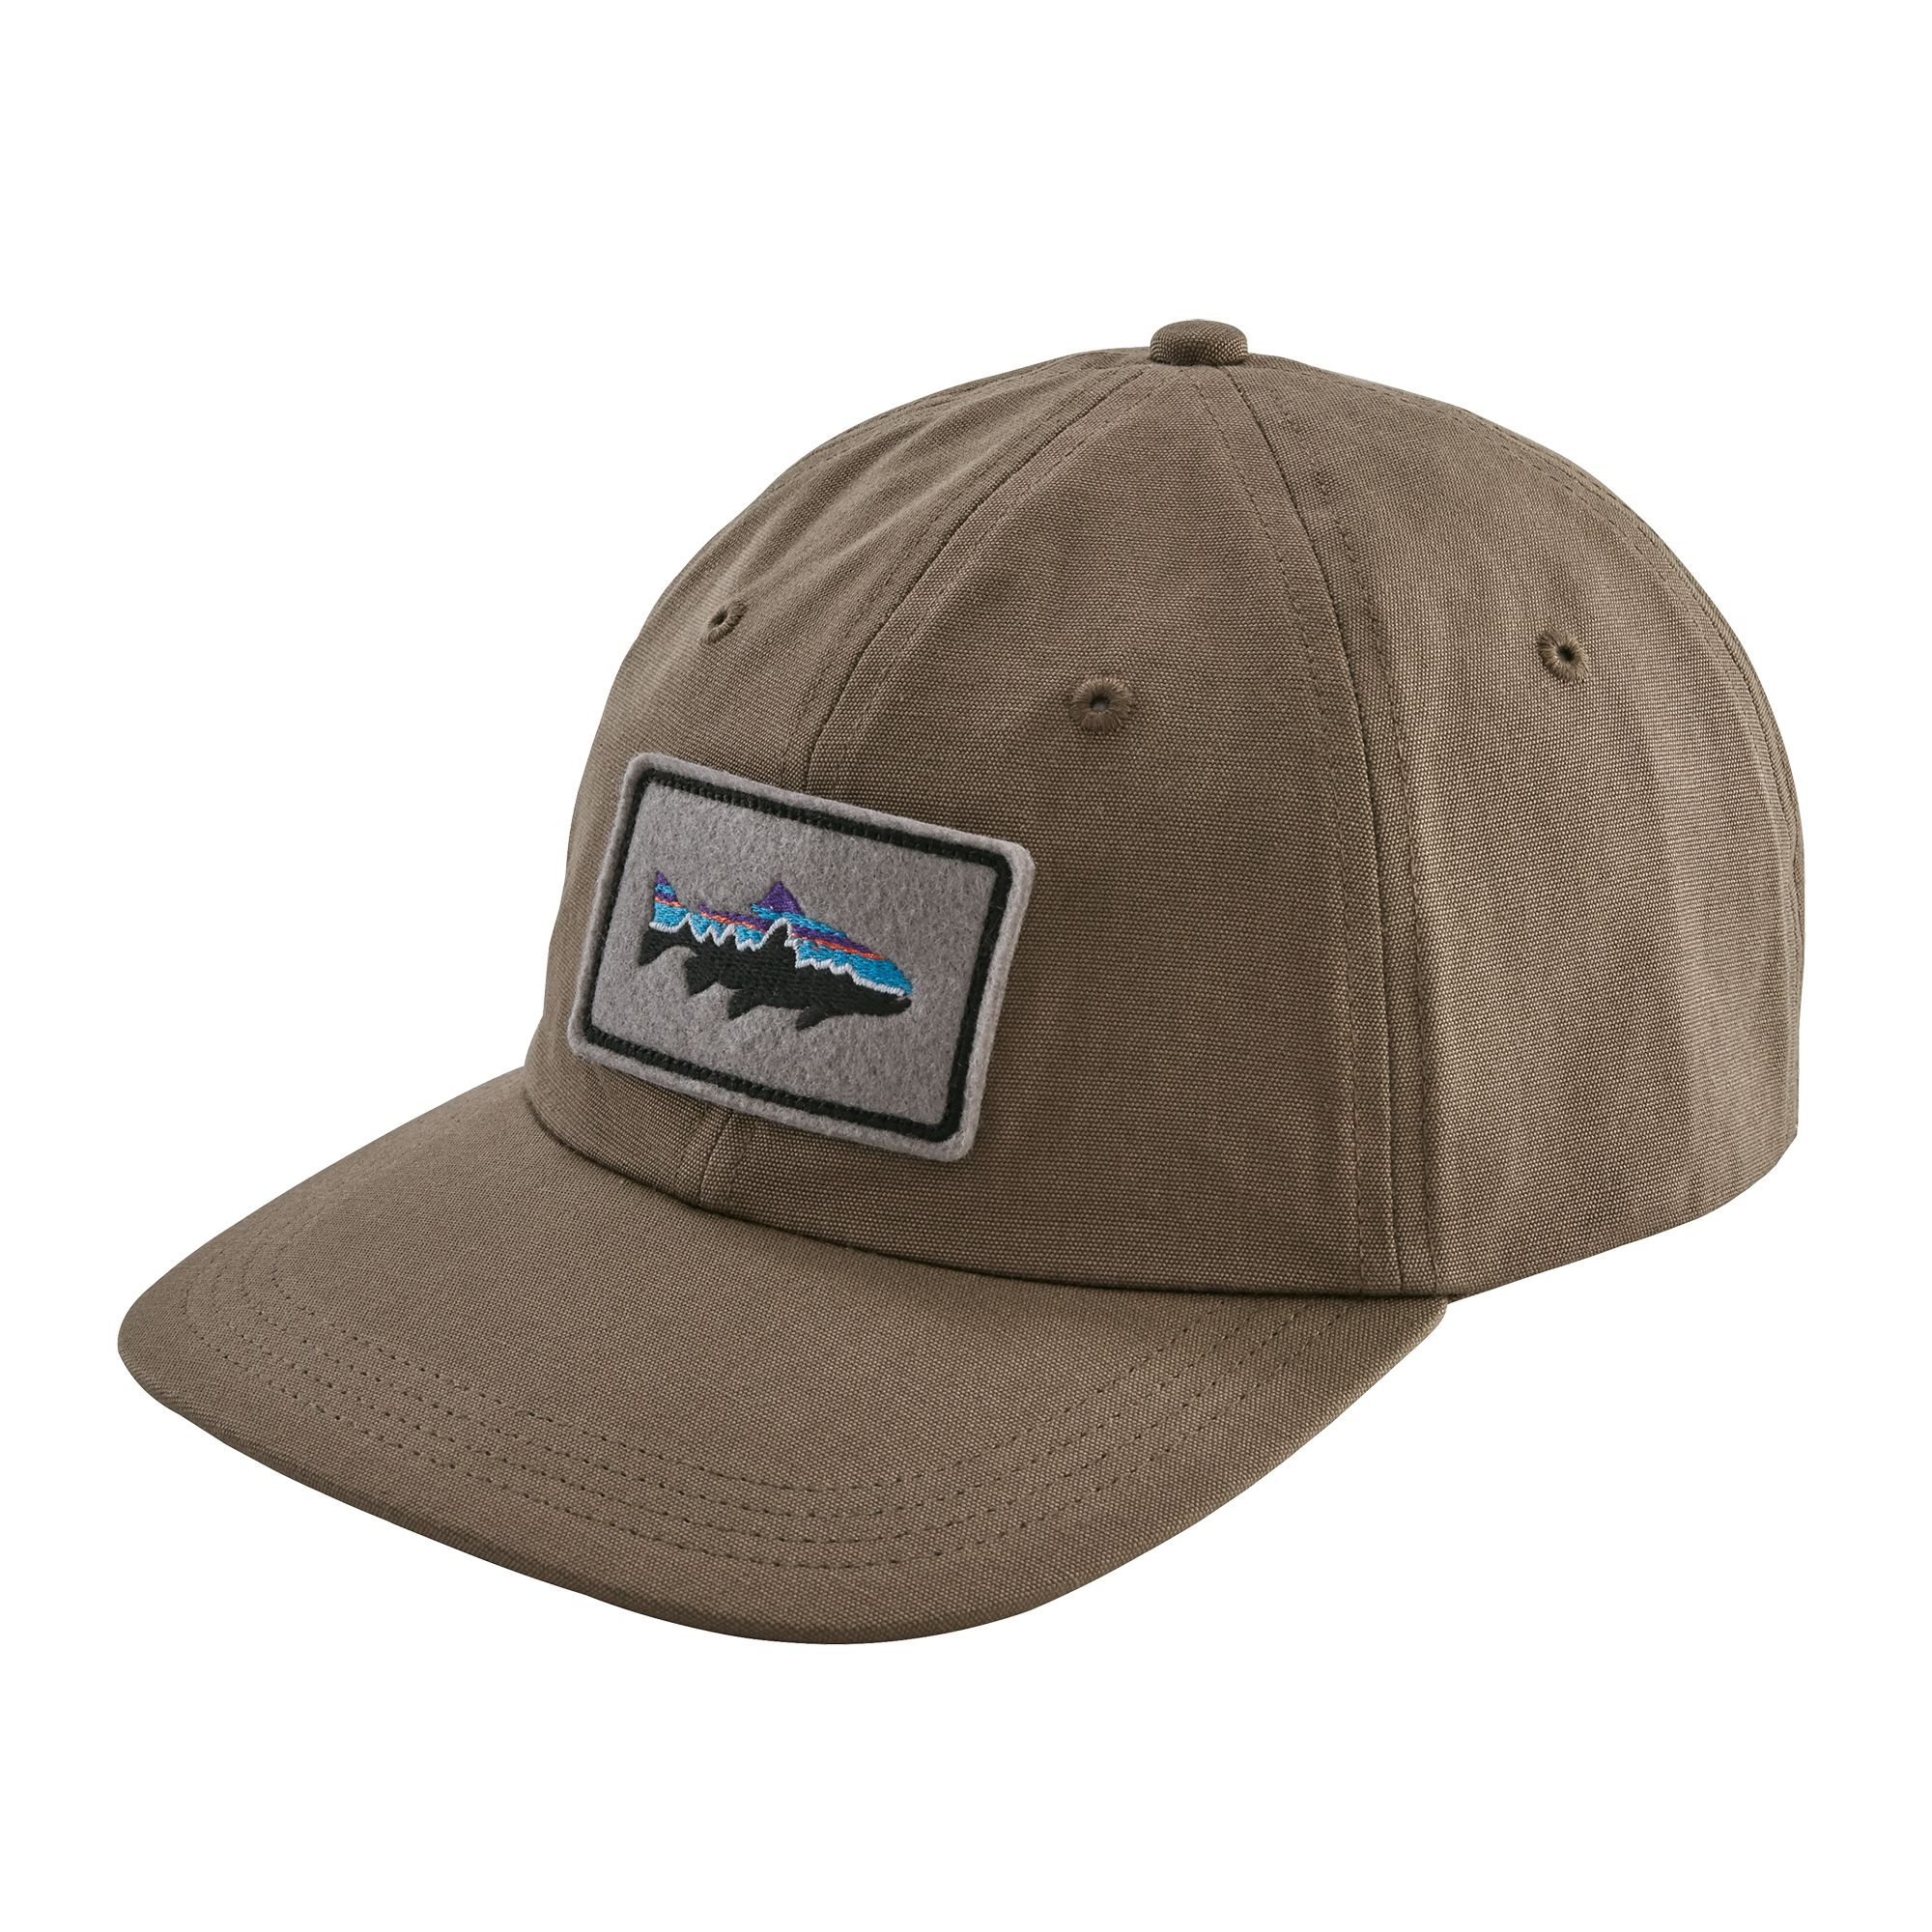 f54cd63a508ef Patagonia Fly Fishing Fitz Roy Trout Patch Trad Cap Summer 2019 for ...